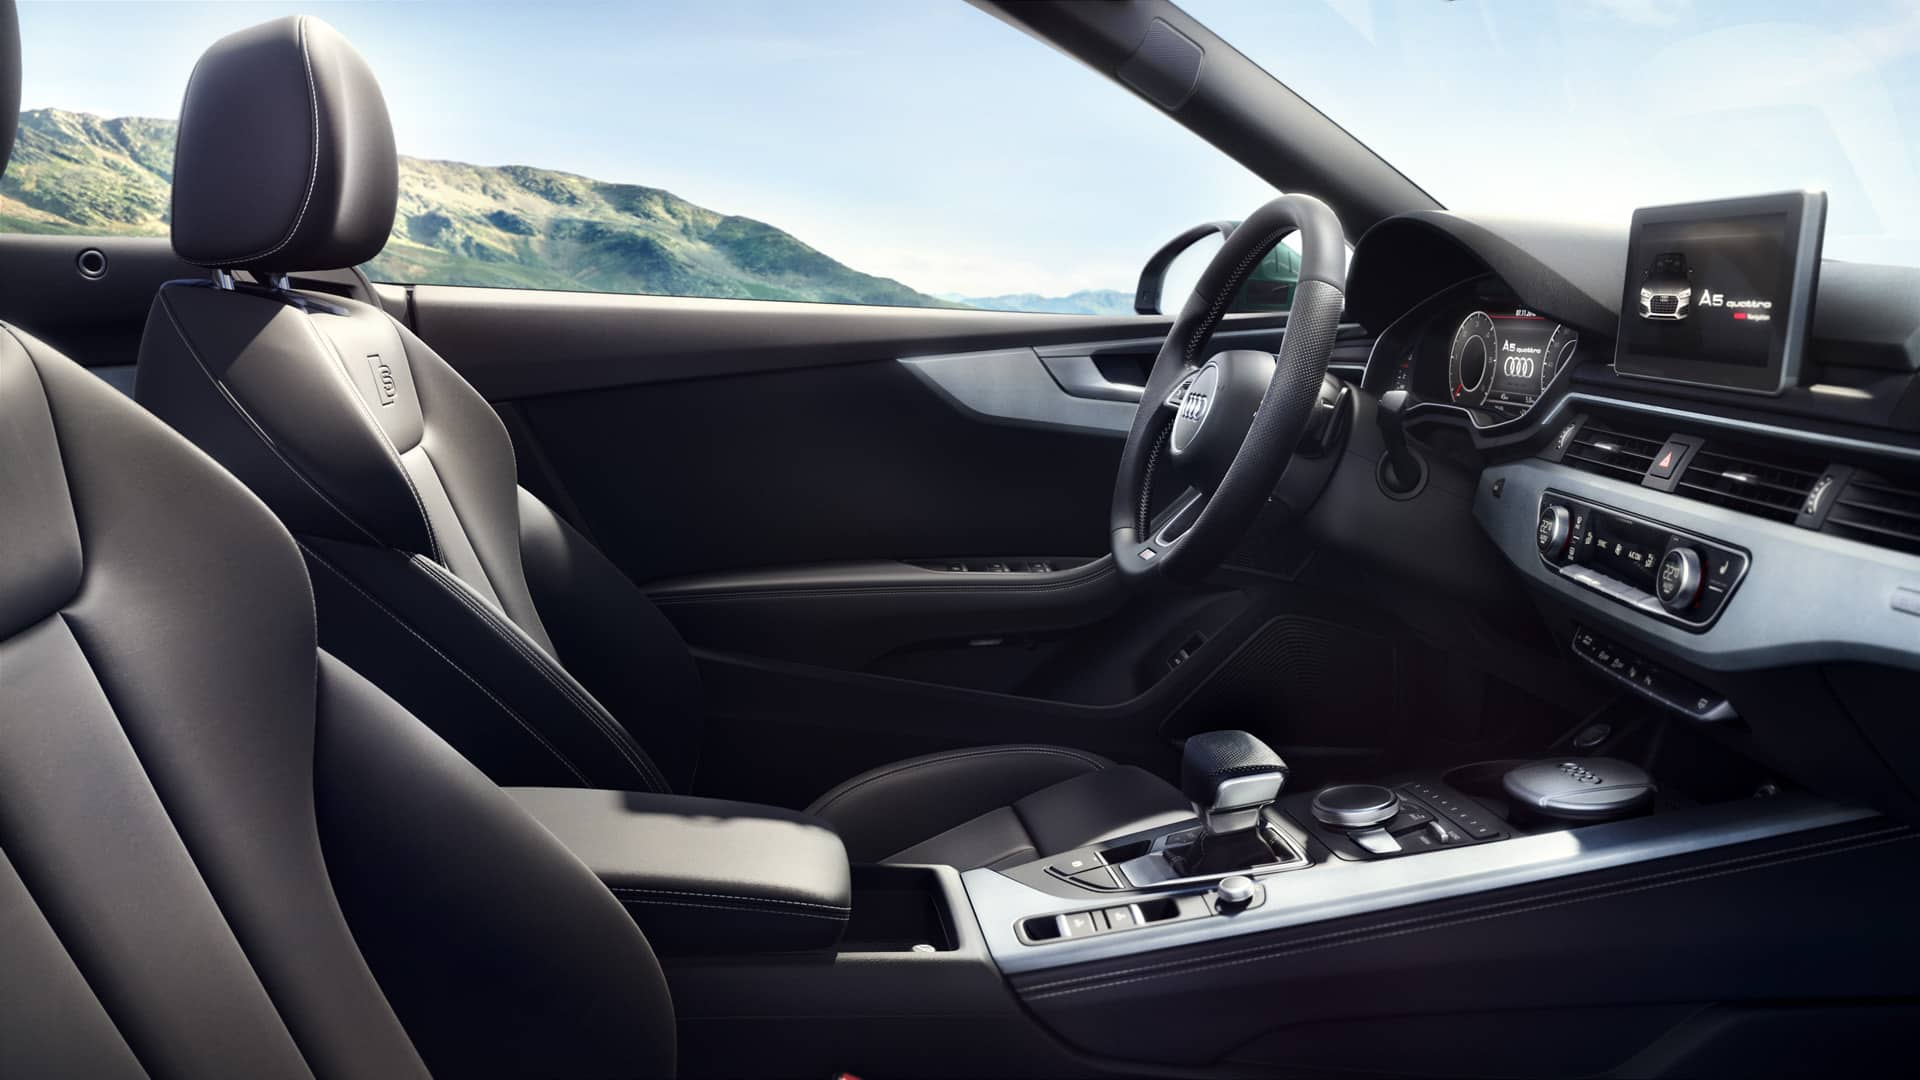 wins you over as soon as you get in the new interior architecture offers more space for drivers and passengers alike